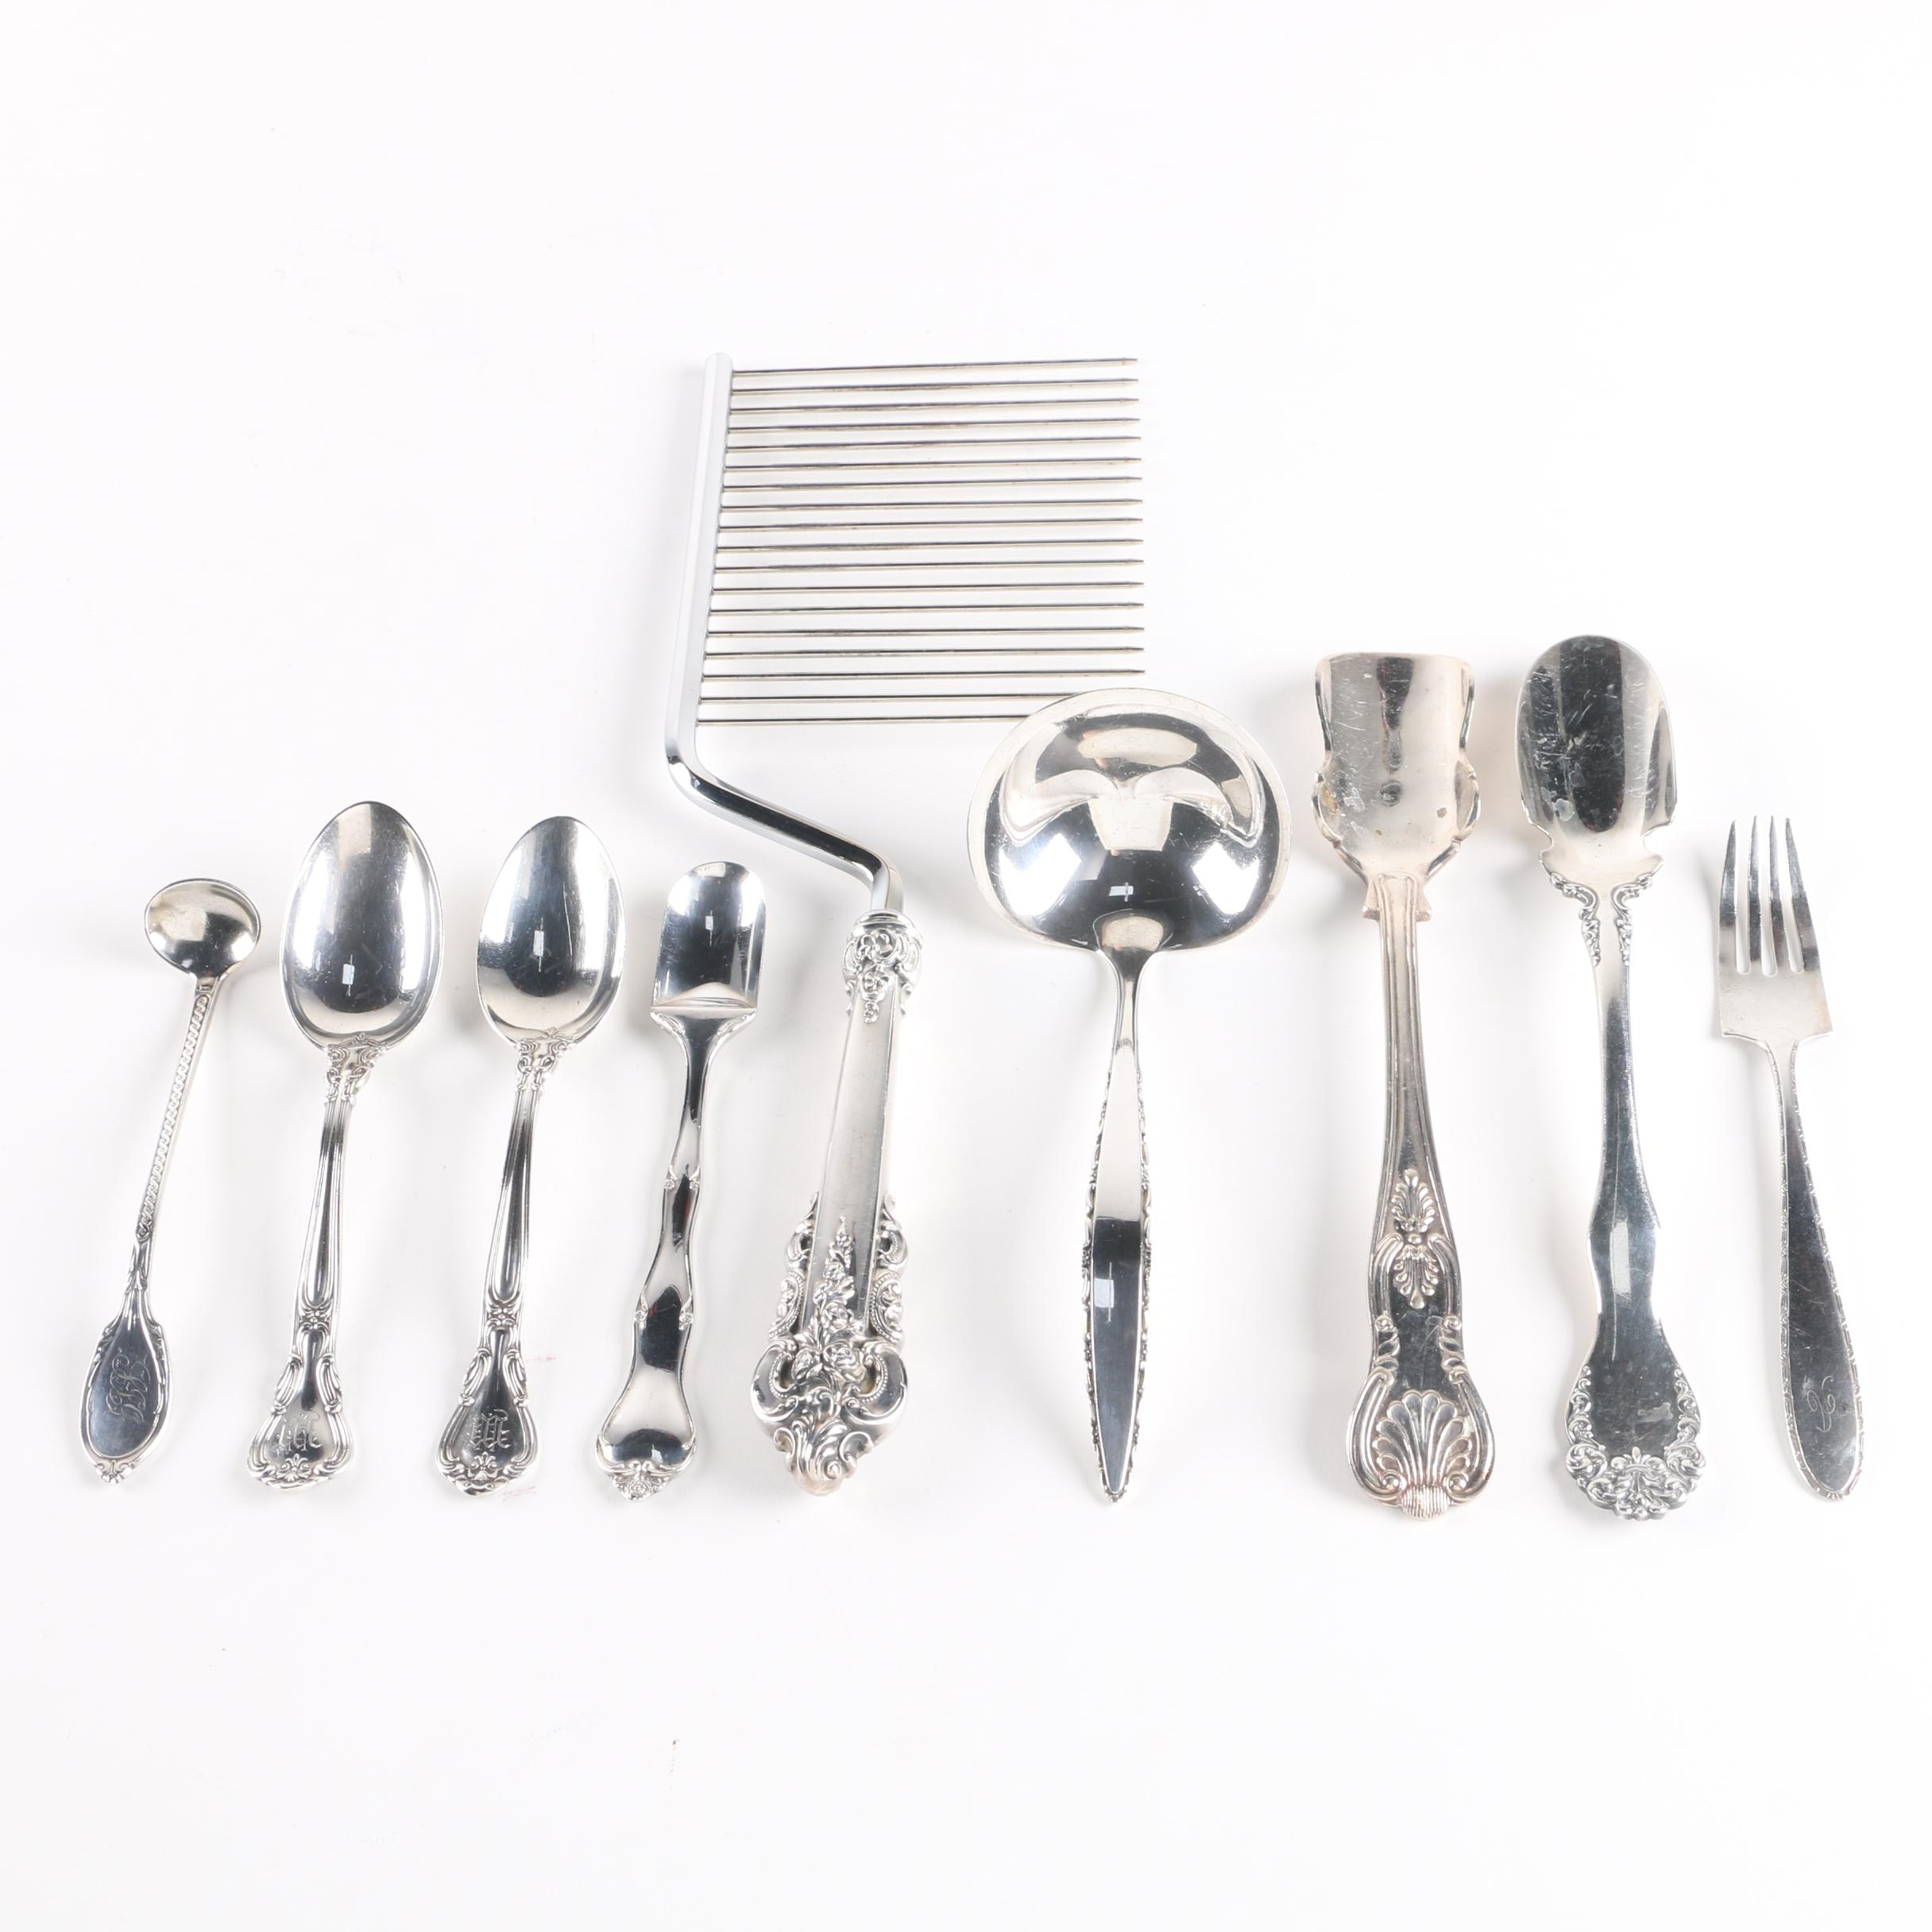 Sterling Silver Serving Utensils and Flatware Featuring Gorham